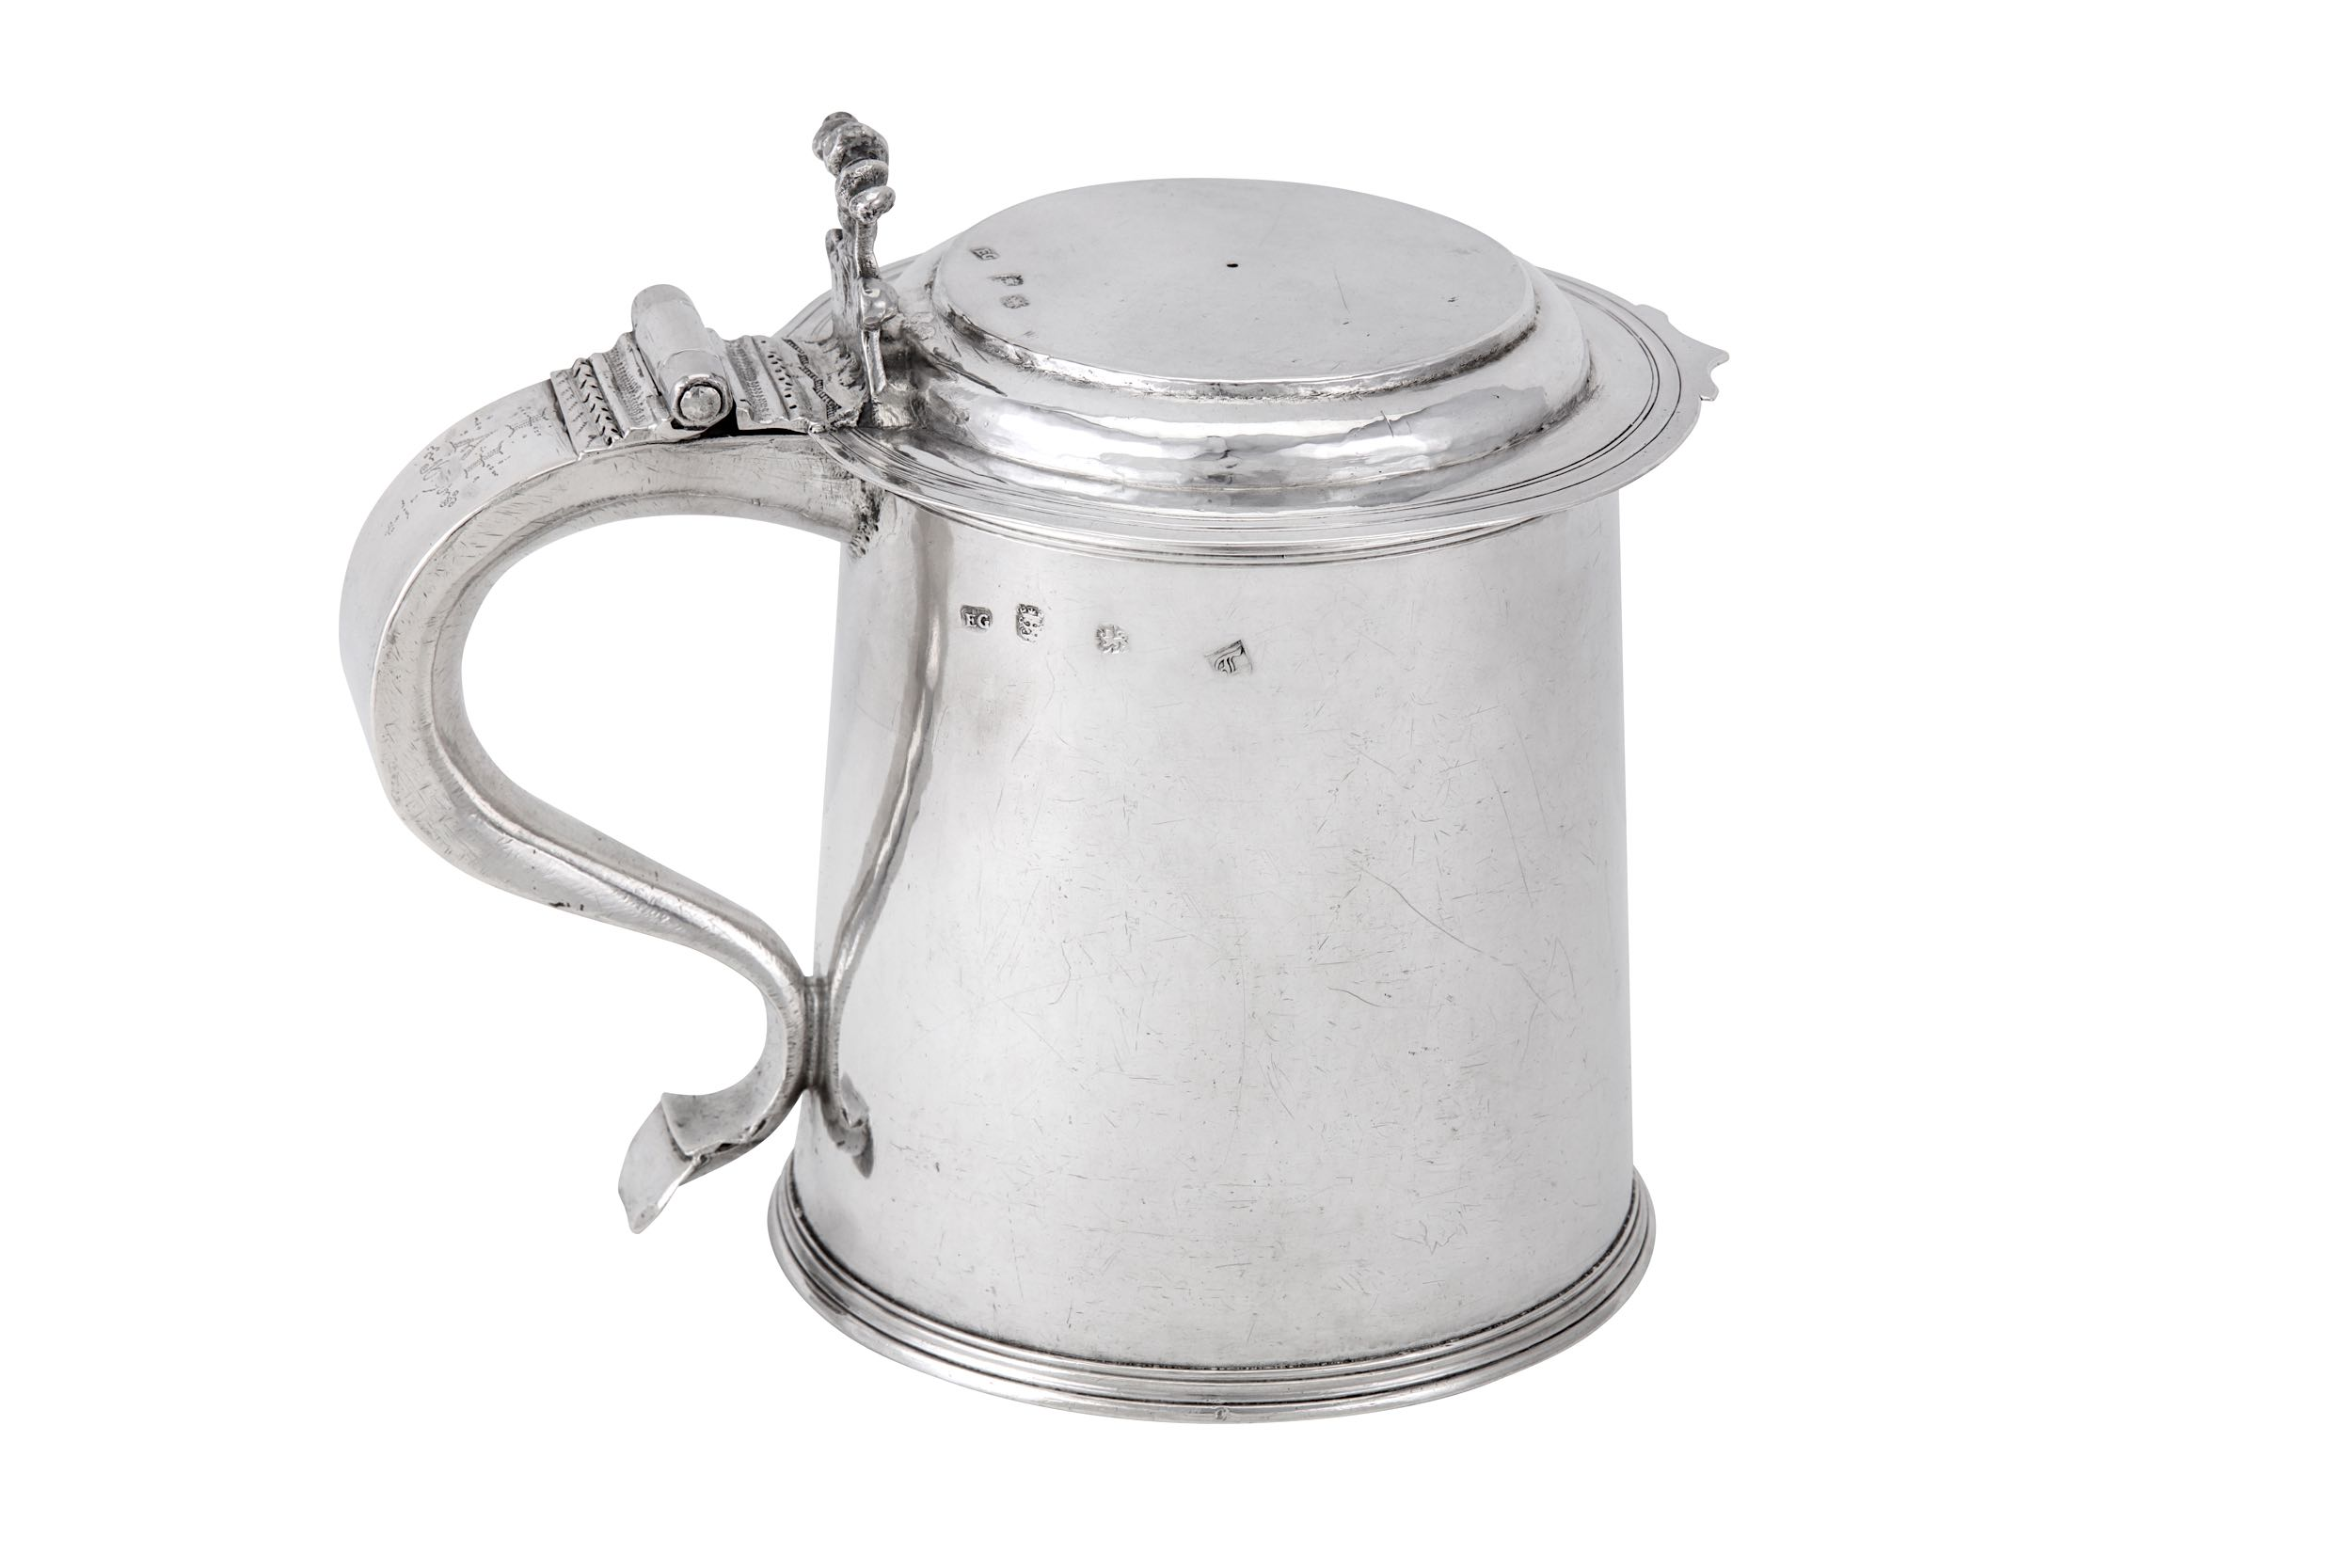 Lot 234 - A Charles II sterling silver tankard, London 1676 by E G in a rectangle, attributed to Edward Gladwi